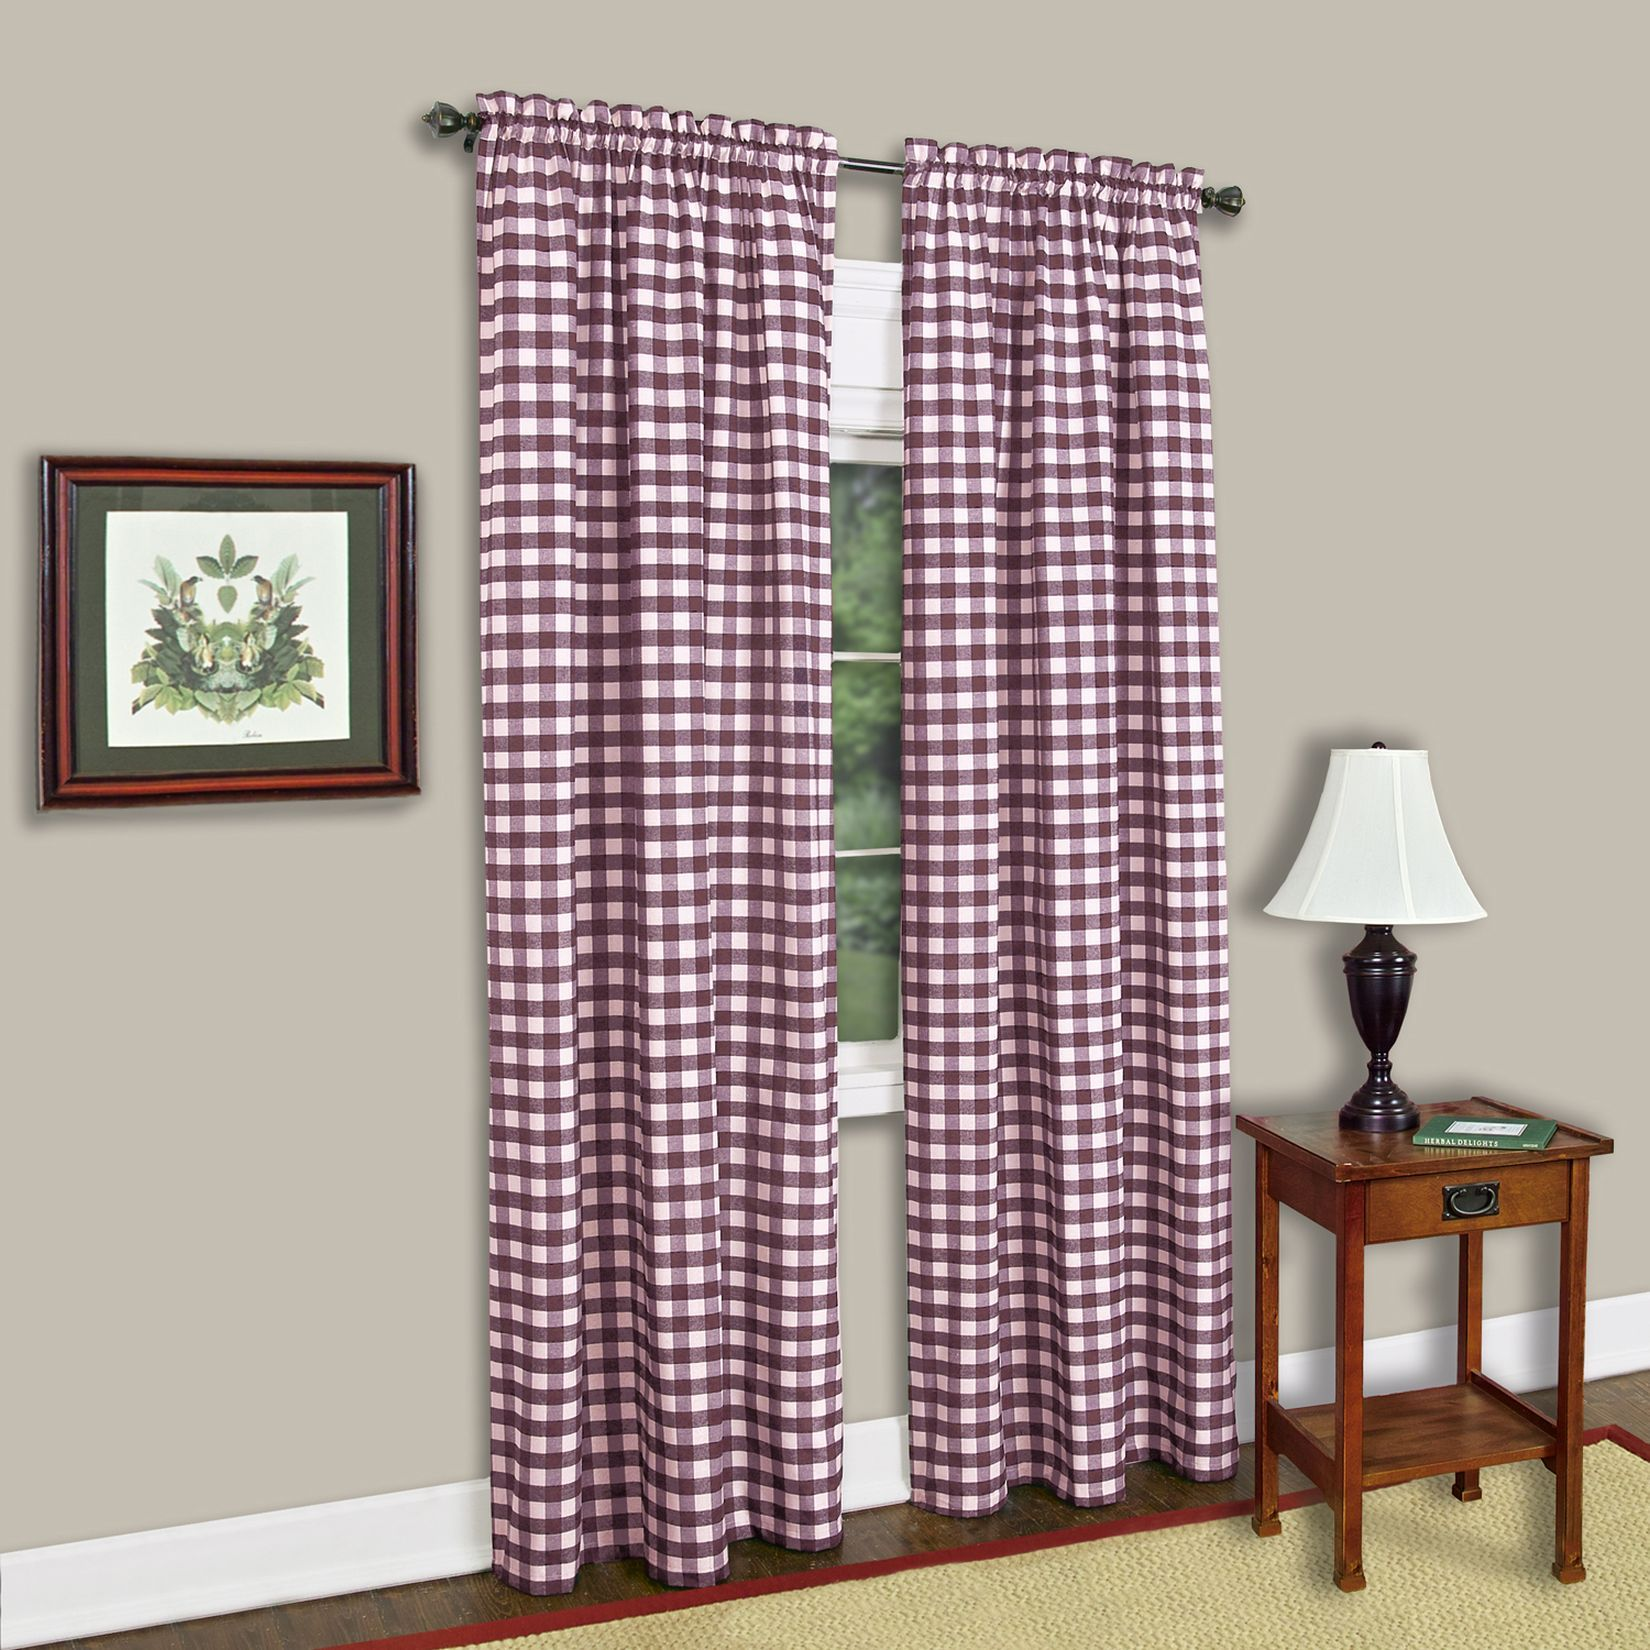 Achim buffalo check window curtain panel blue blue green and taupe